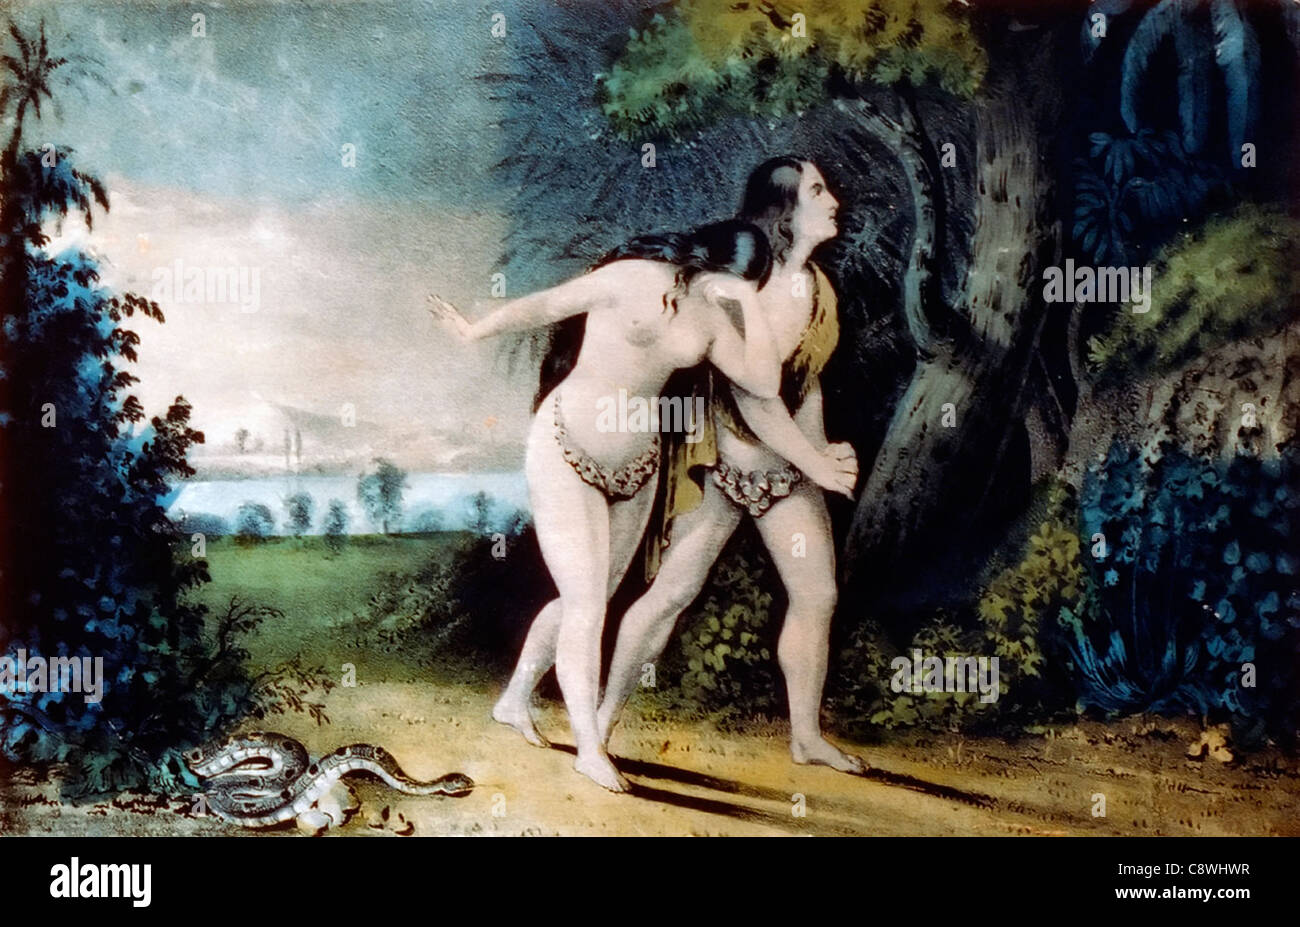 Adam and Eve Driven Out of Paradise - Stock Image